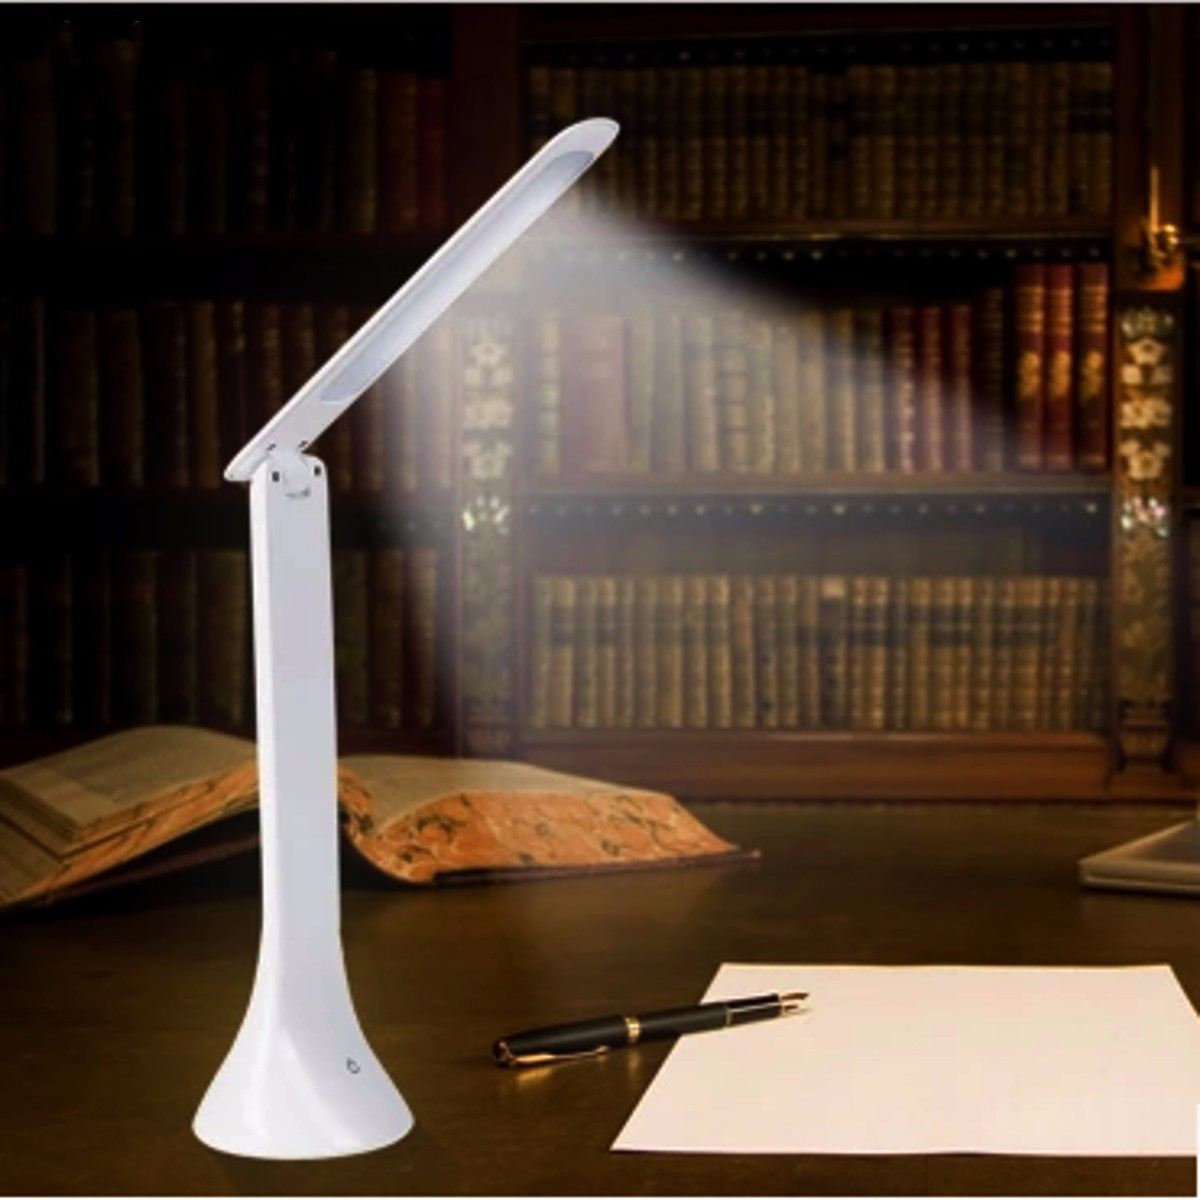 Best ideas about Touch Desk Lamp . Save or Pin Adjustable USB Rechargeable Touch Sensor LED Desk Table Now.